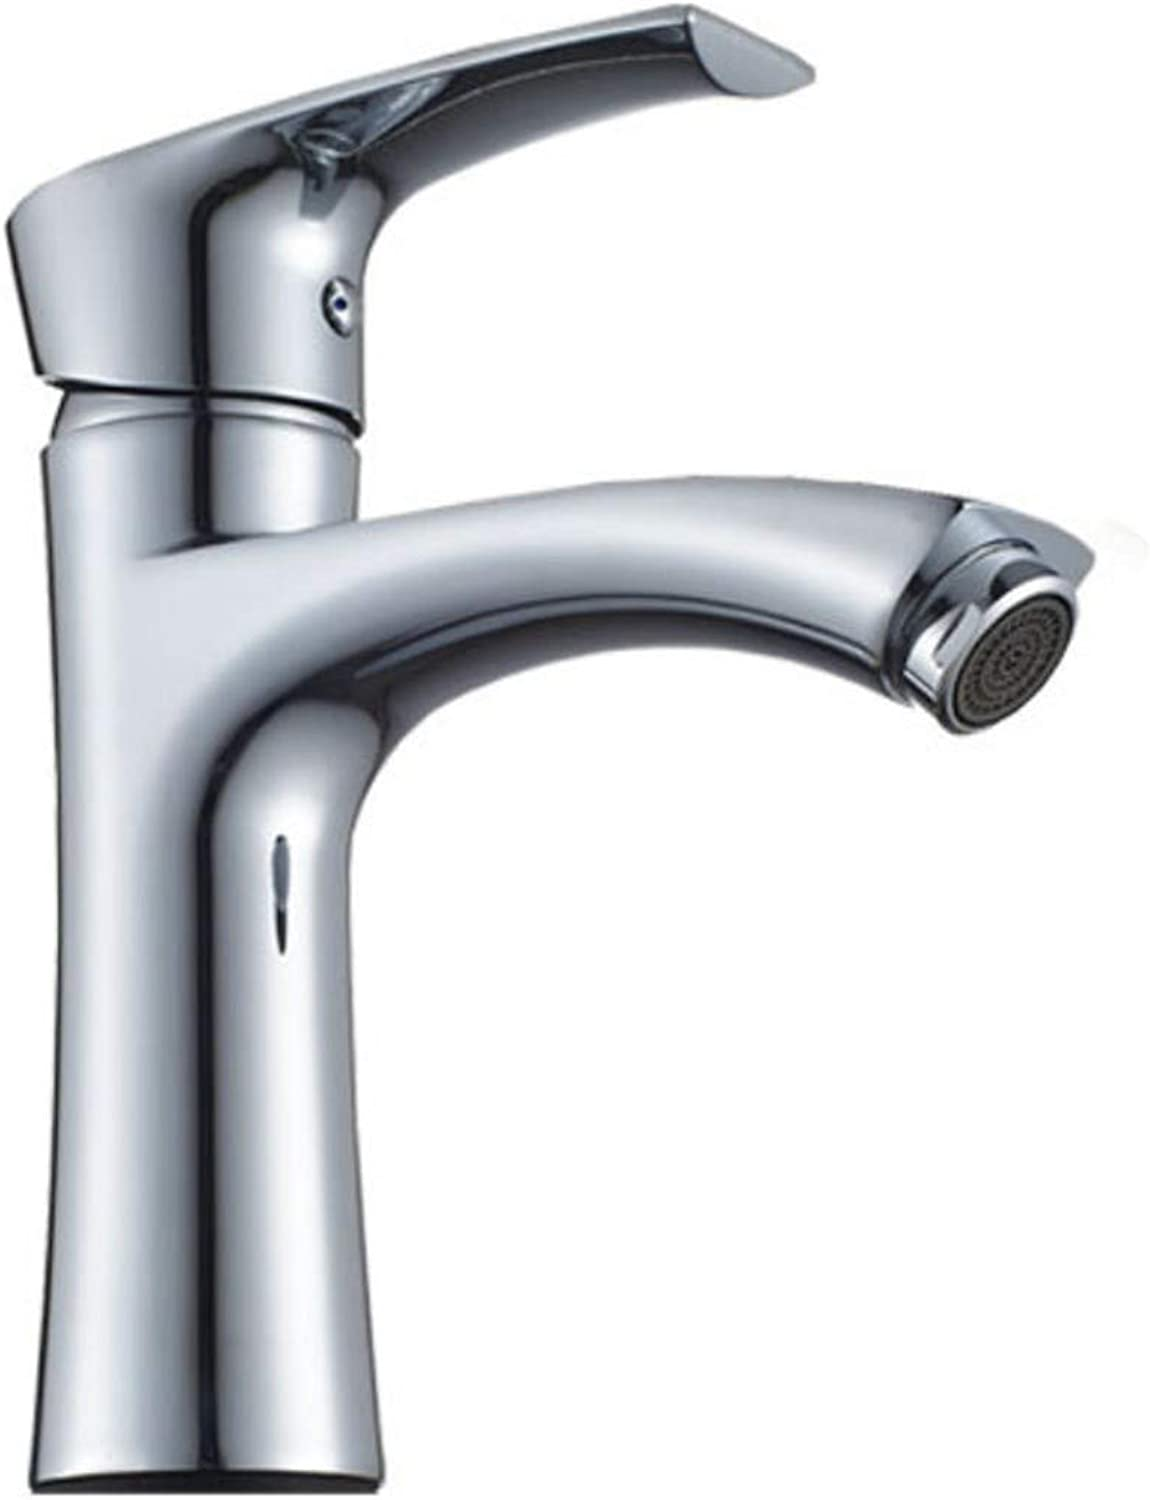 Faucets Washbasin Hot And Cold Bathroom Cabinet Washbasin All Copper Faucet.